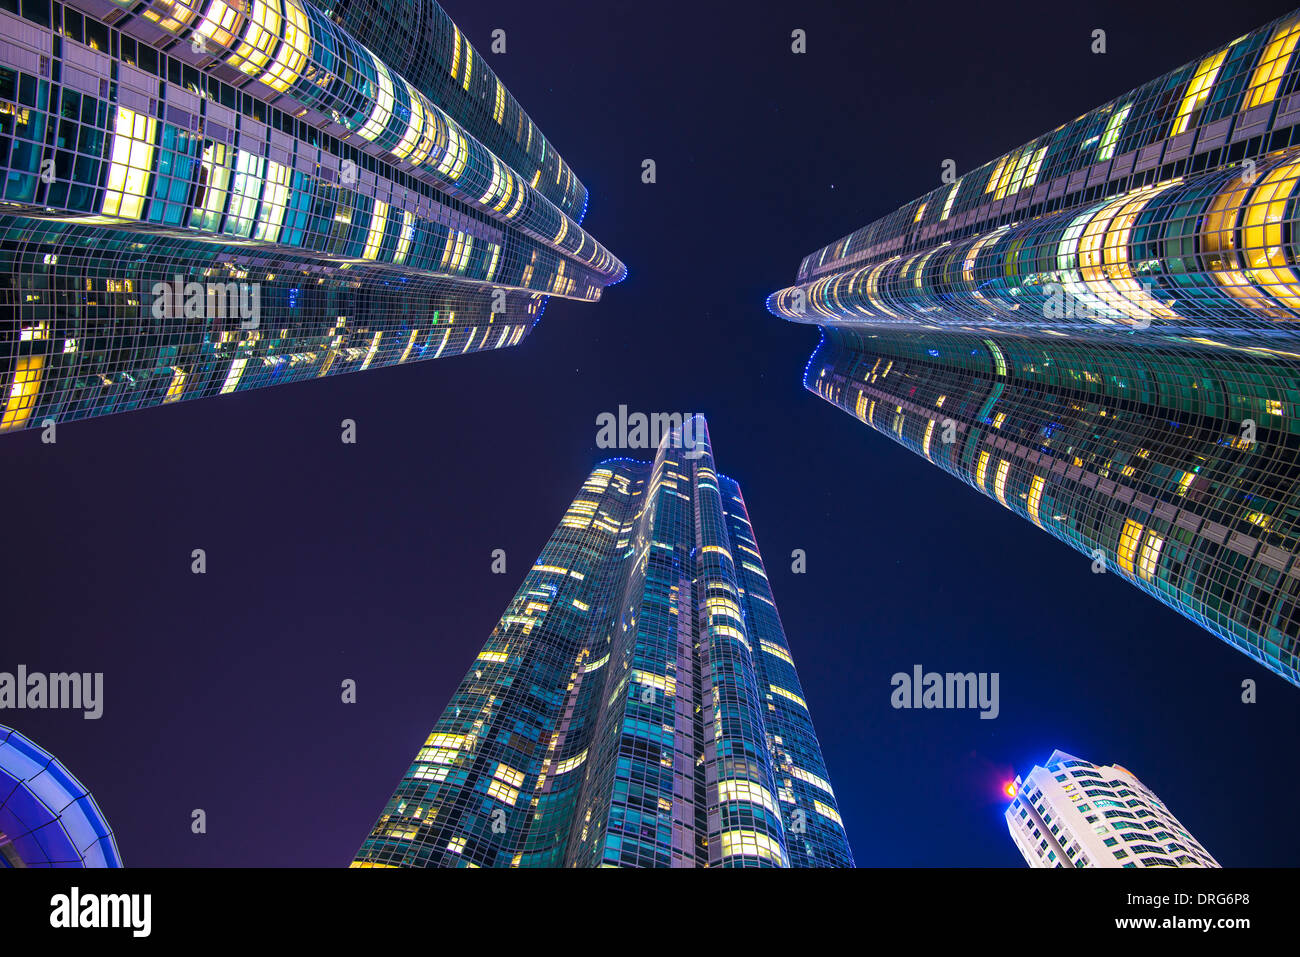 Busan, South Korea skyline at Haeundae District. - Stock Image